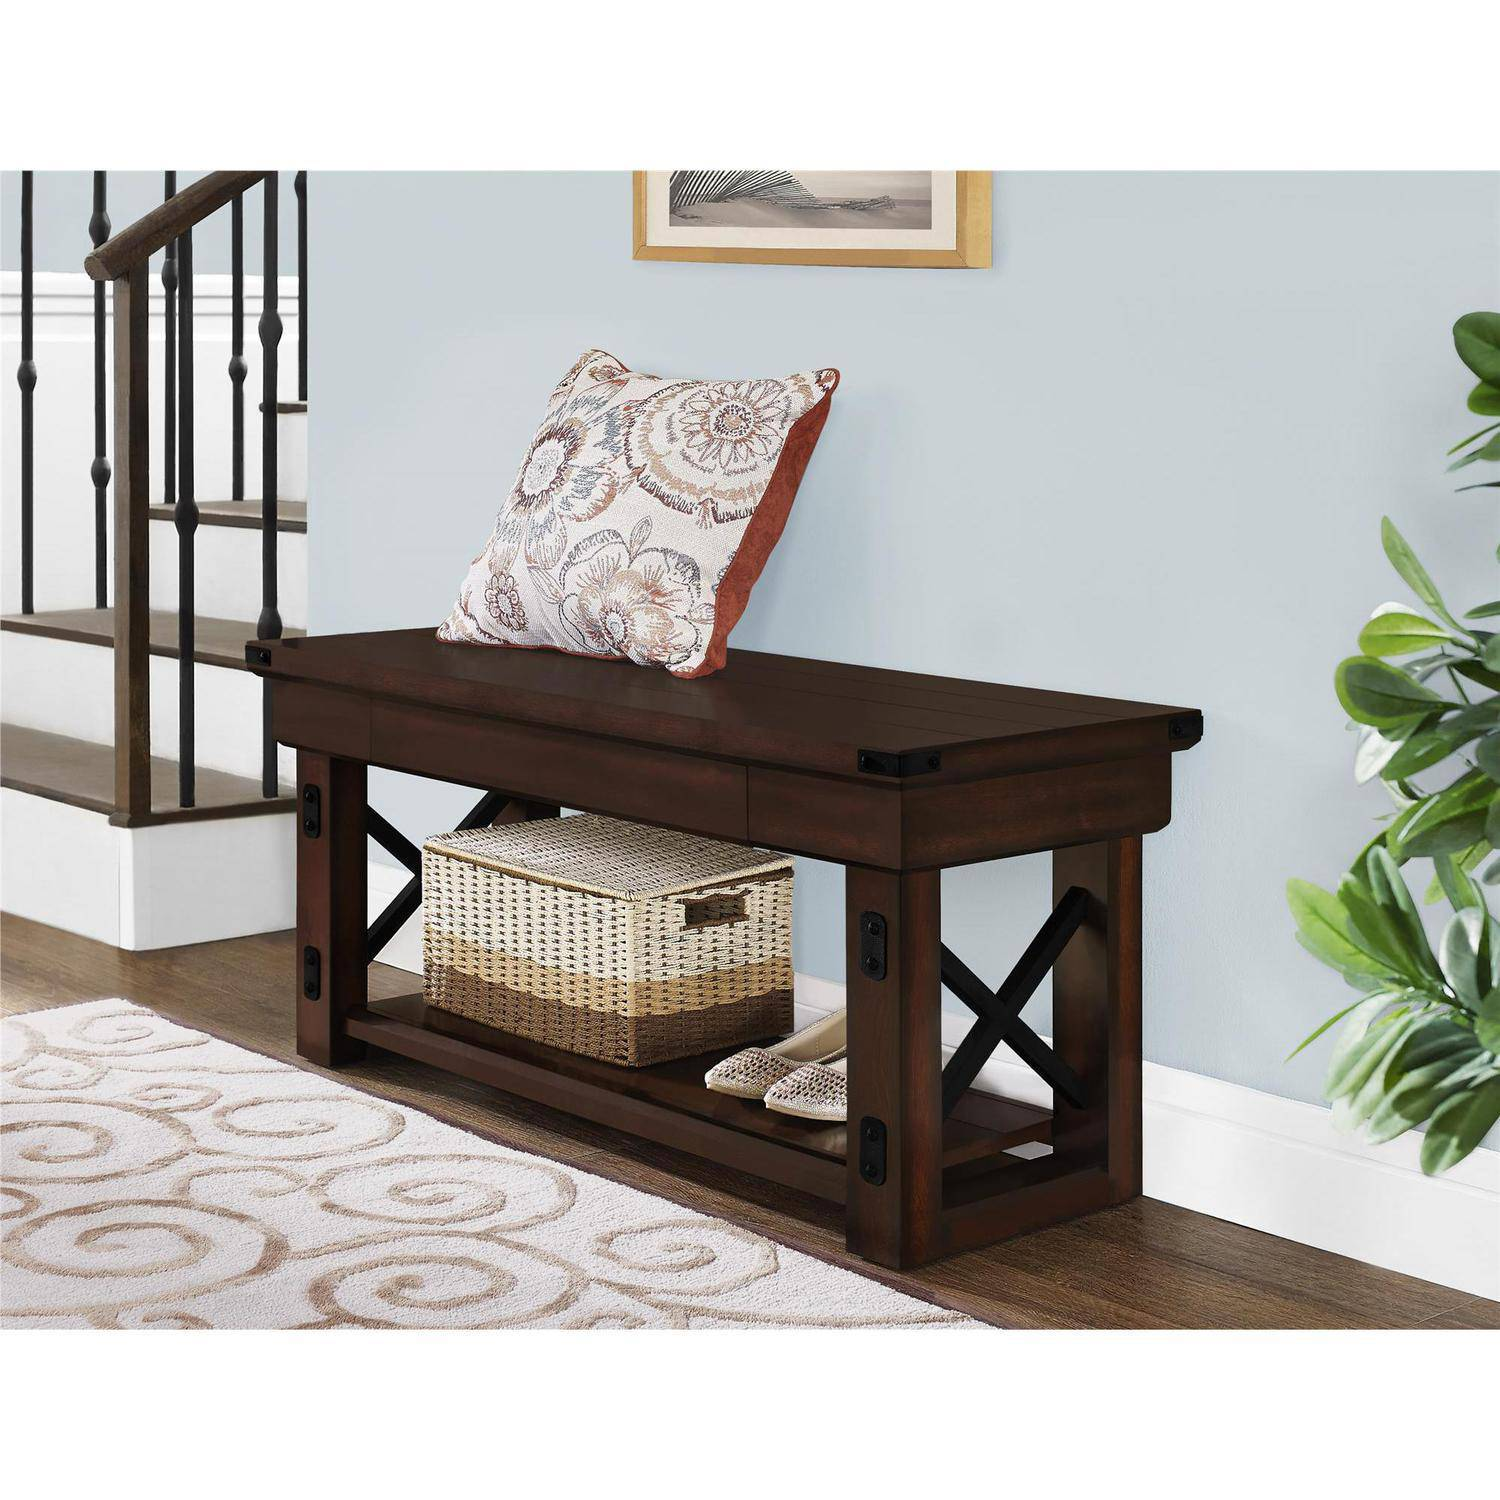 fancy decorations image great entryway ideas home insight bench black of